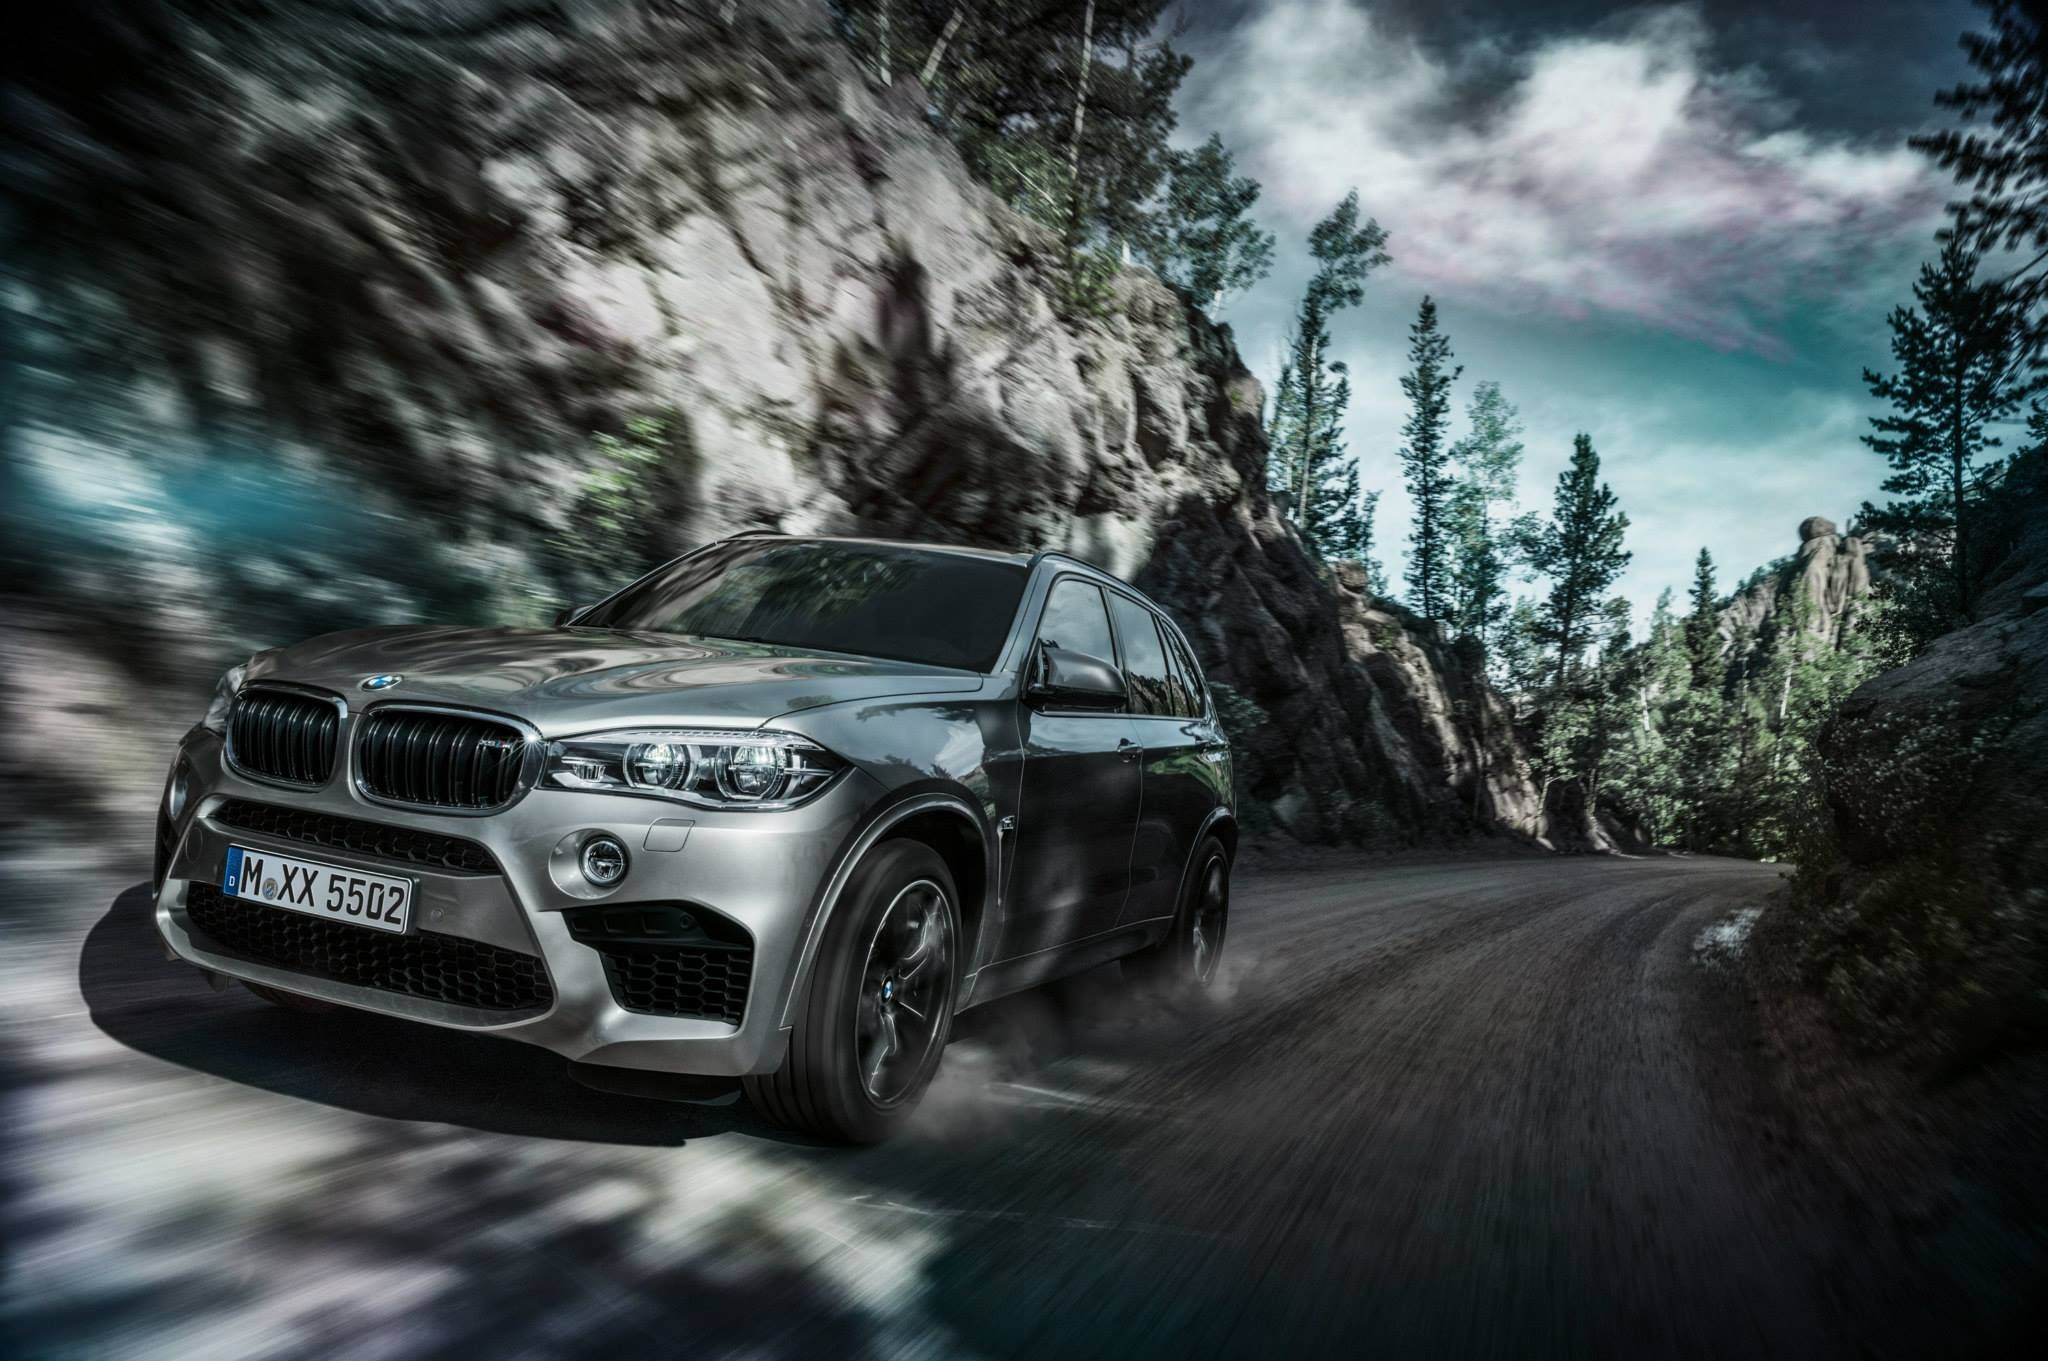 Bmw X5 M F85 And X6 M F86 Official Thread Specs Wallpapers Photos Videos X5 M Bmw Bmw X5 M